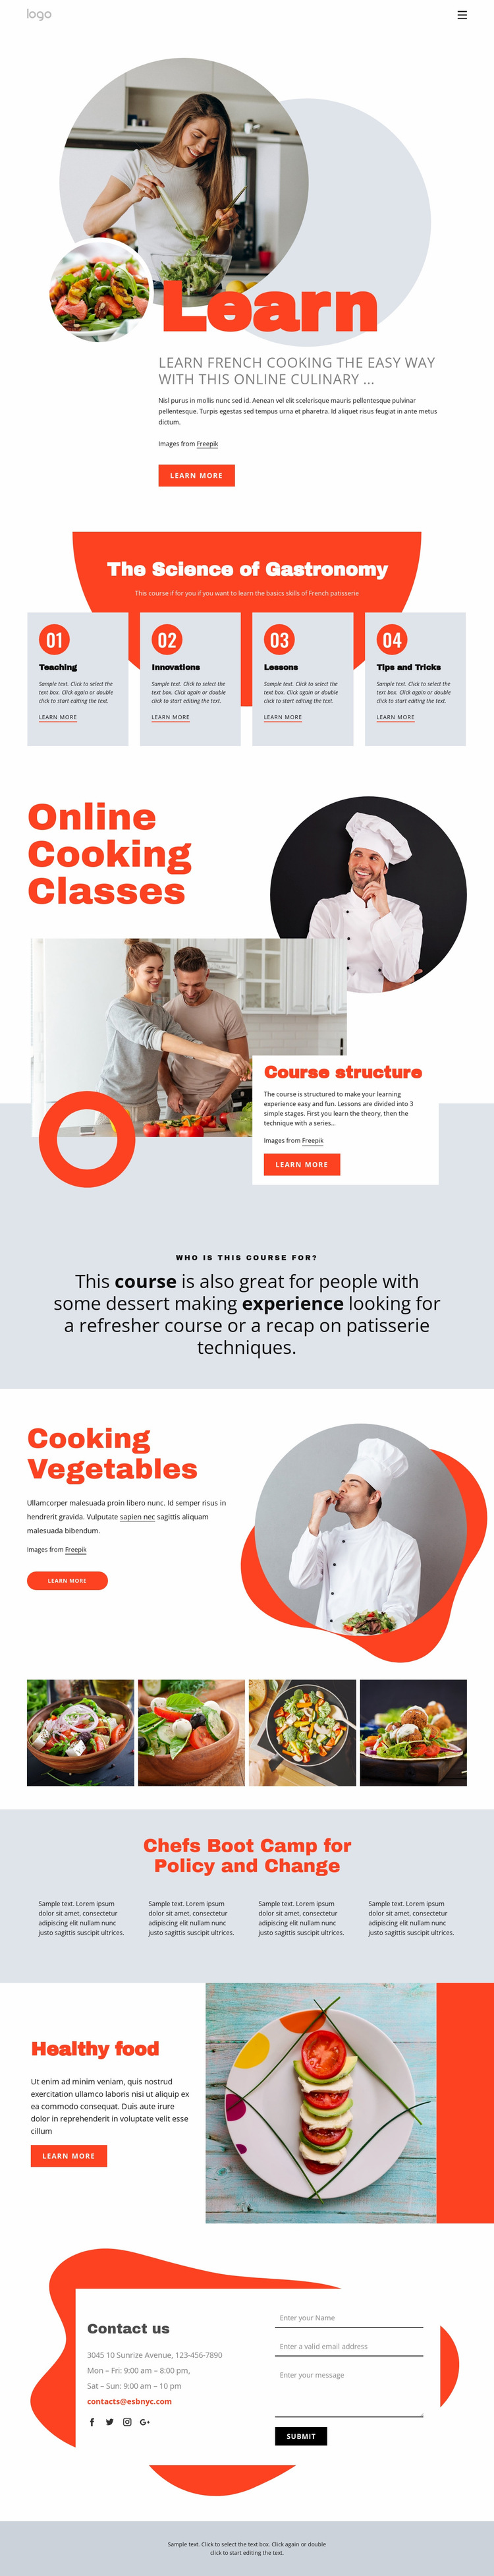 Learn cooking the easy way Website Builder